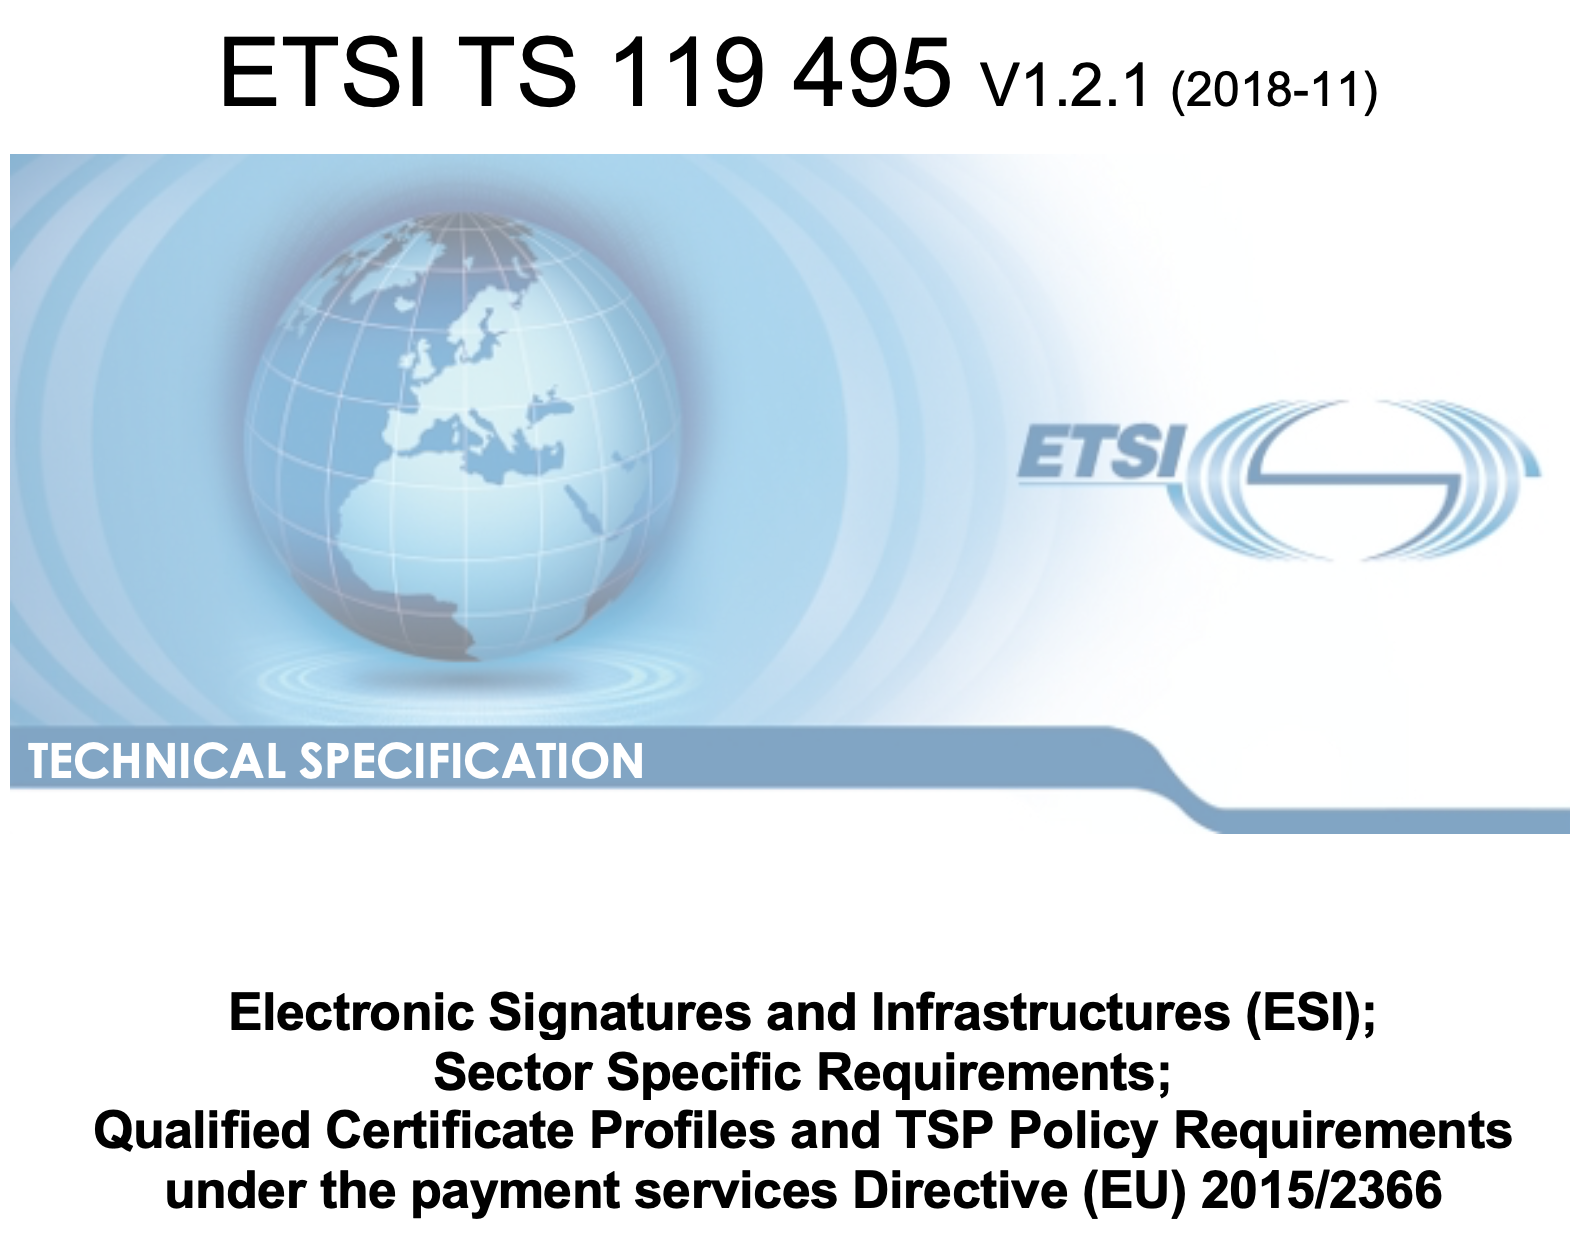 The new ETSI standard for eIDAS qualified certificates